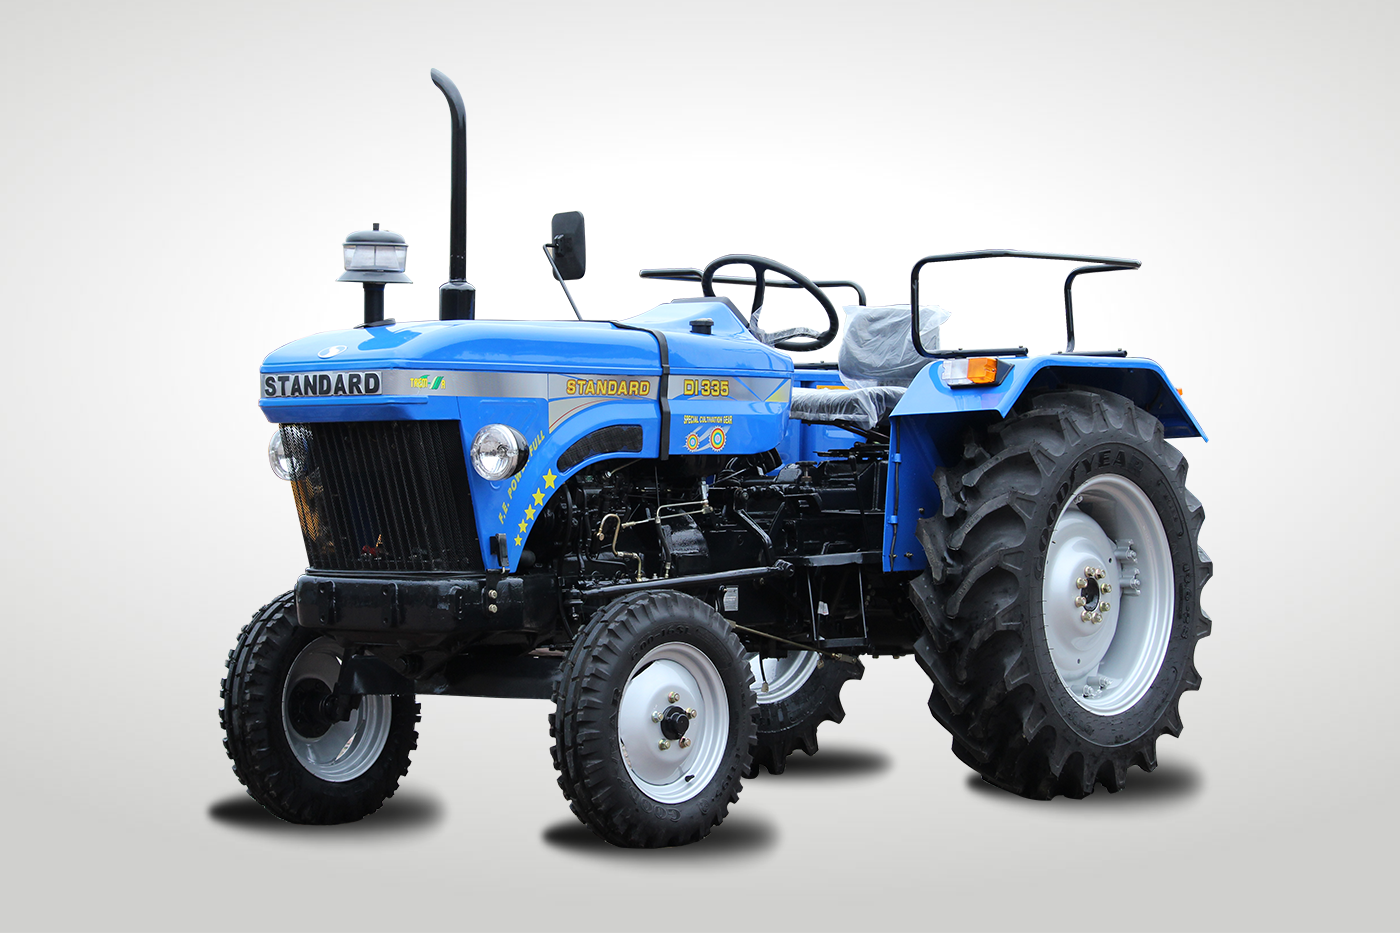 Standard DI 335 Tractor Price, Feature, Specification, Review Video. Standard DI 335 Tractor On-road Price in India